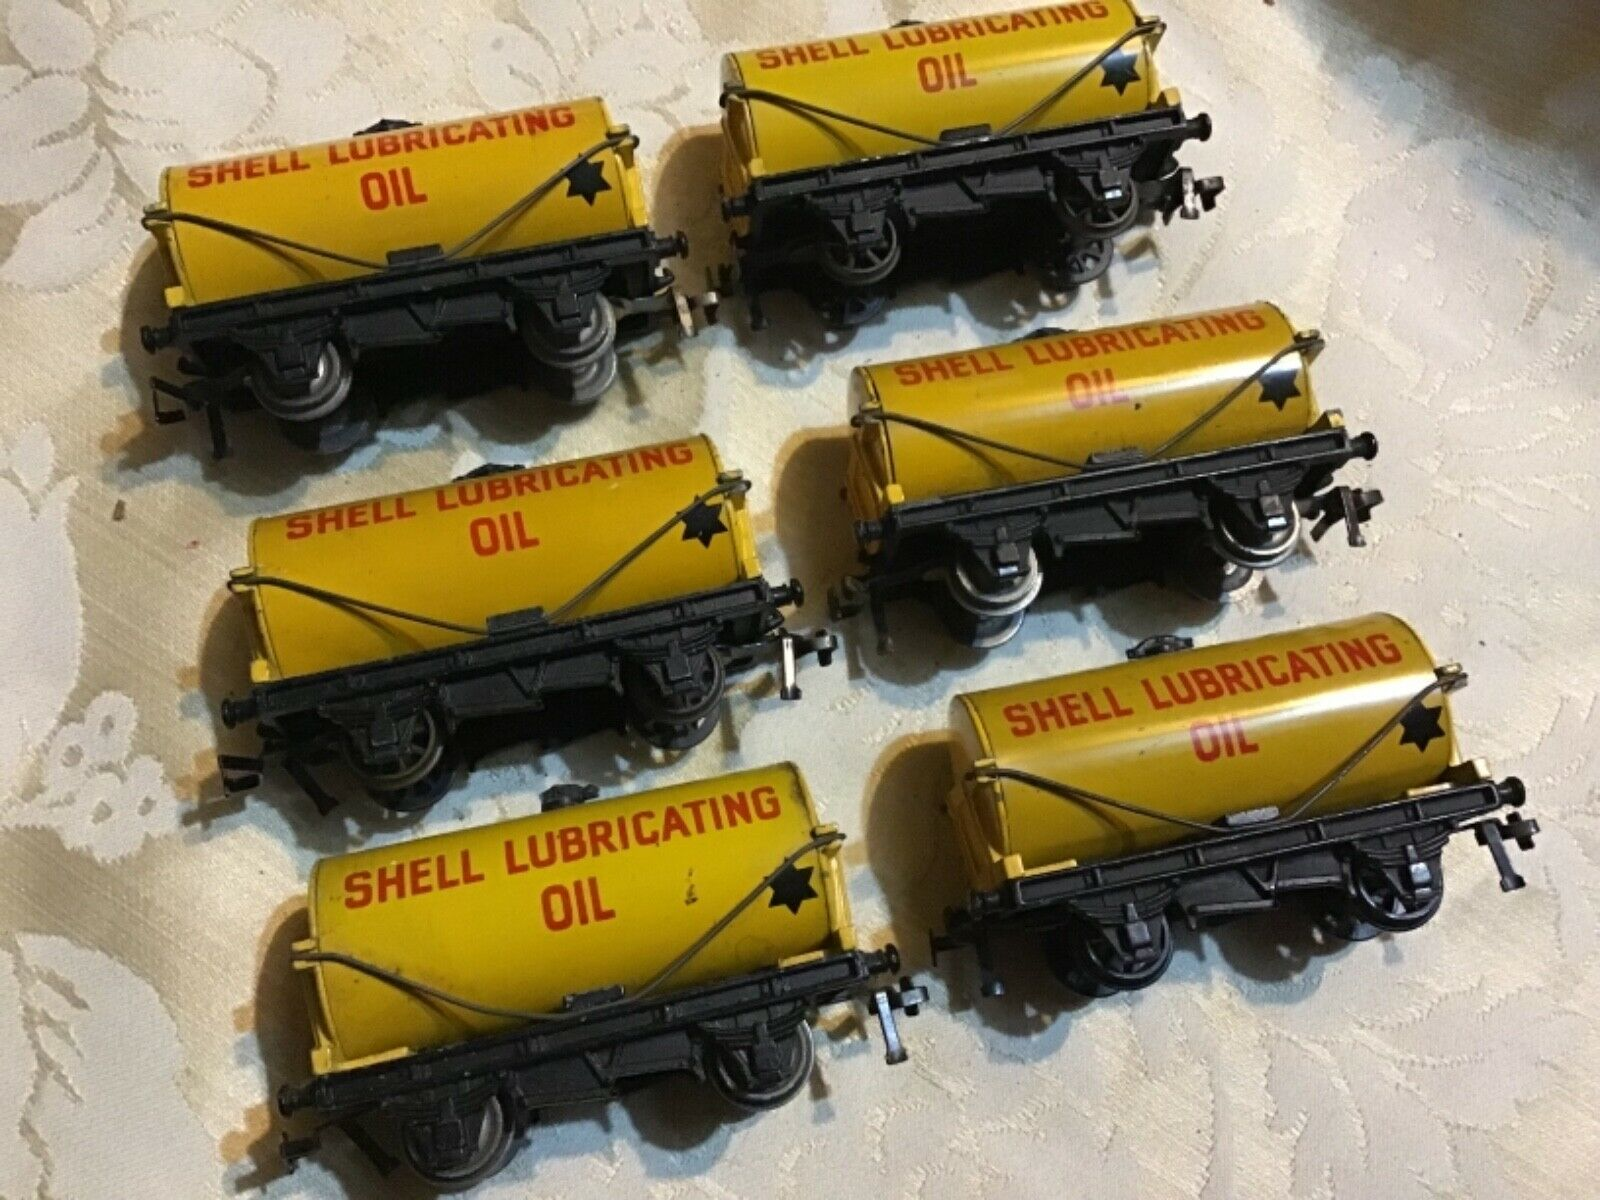 HORNBY DUBLO SHELL LUBRICATING OIL TANKERS X 6 ALL VERY GOOD LOOK